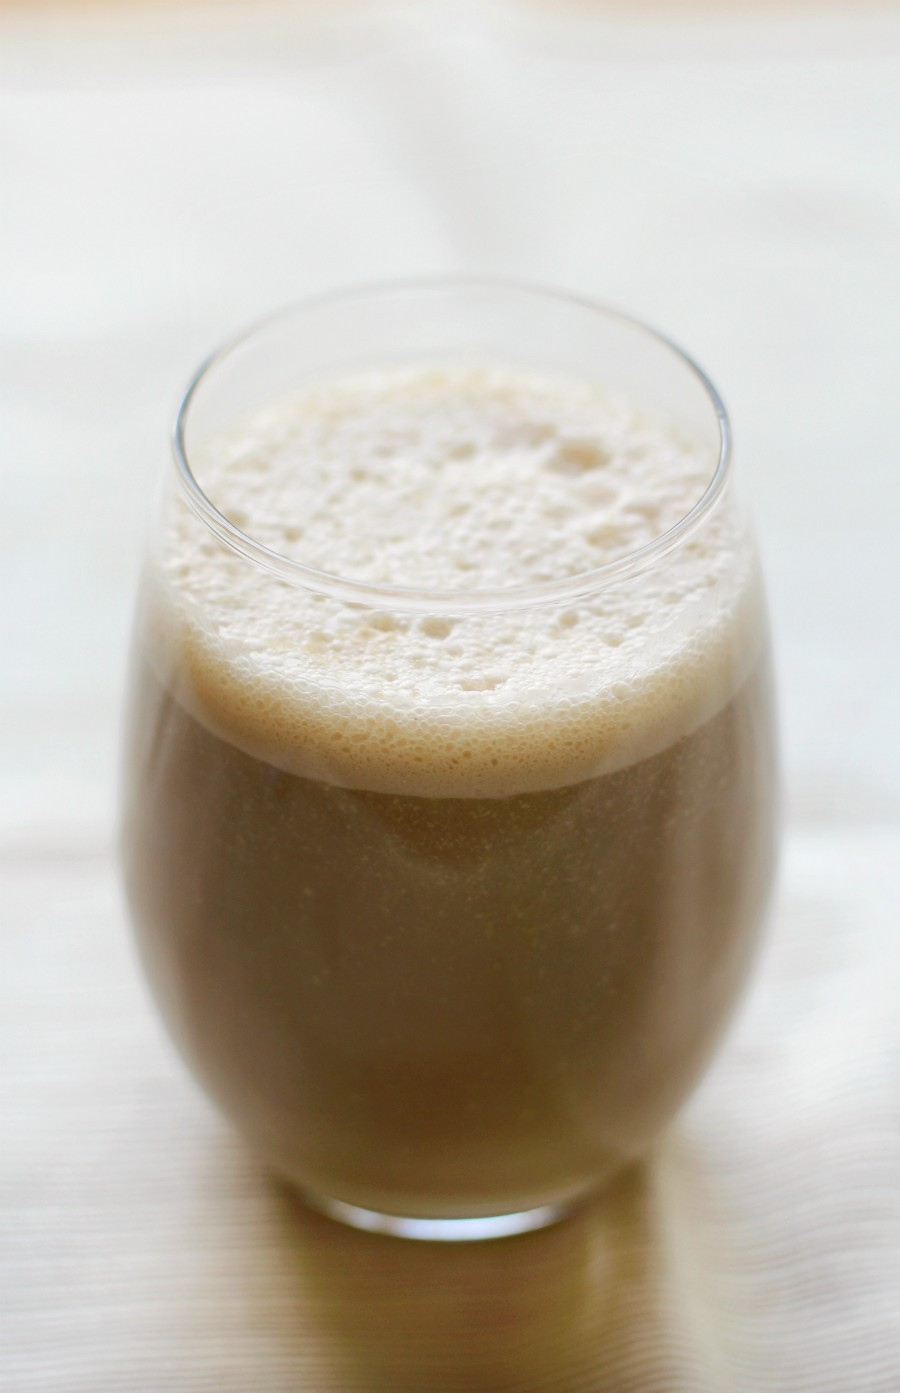 Vegan Coconut Coffee Breakfast Shake (Gluten-Free) | Strength and Sunshine @RebeccaGF666 A satiating and hunger-crushing recipe for the best Vegan Coconut Coffee Breakfast Shake! When you're rushing out the door, but still need morning fuel to keep you going all day, this gluten-free, healthy high fat, sneaky protein smoothie is just what you need (with a caffeine kick)! #breakfast #shake #highfat #vegan #glutenfree #coconut #coffee